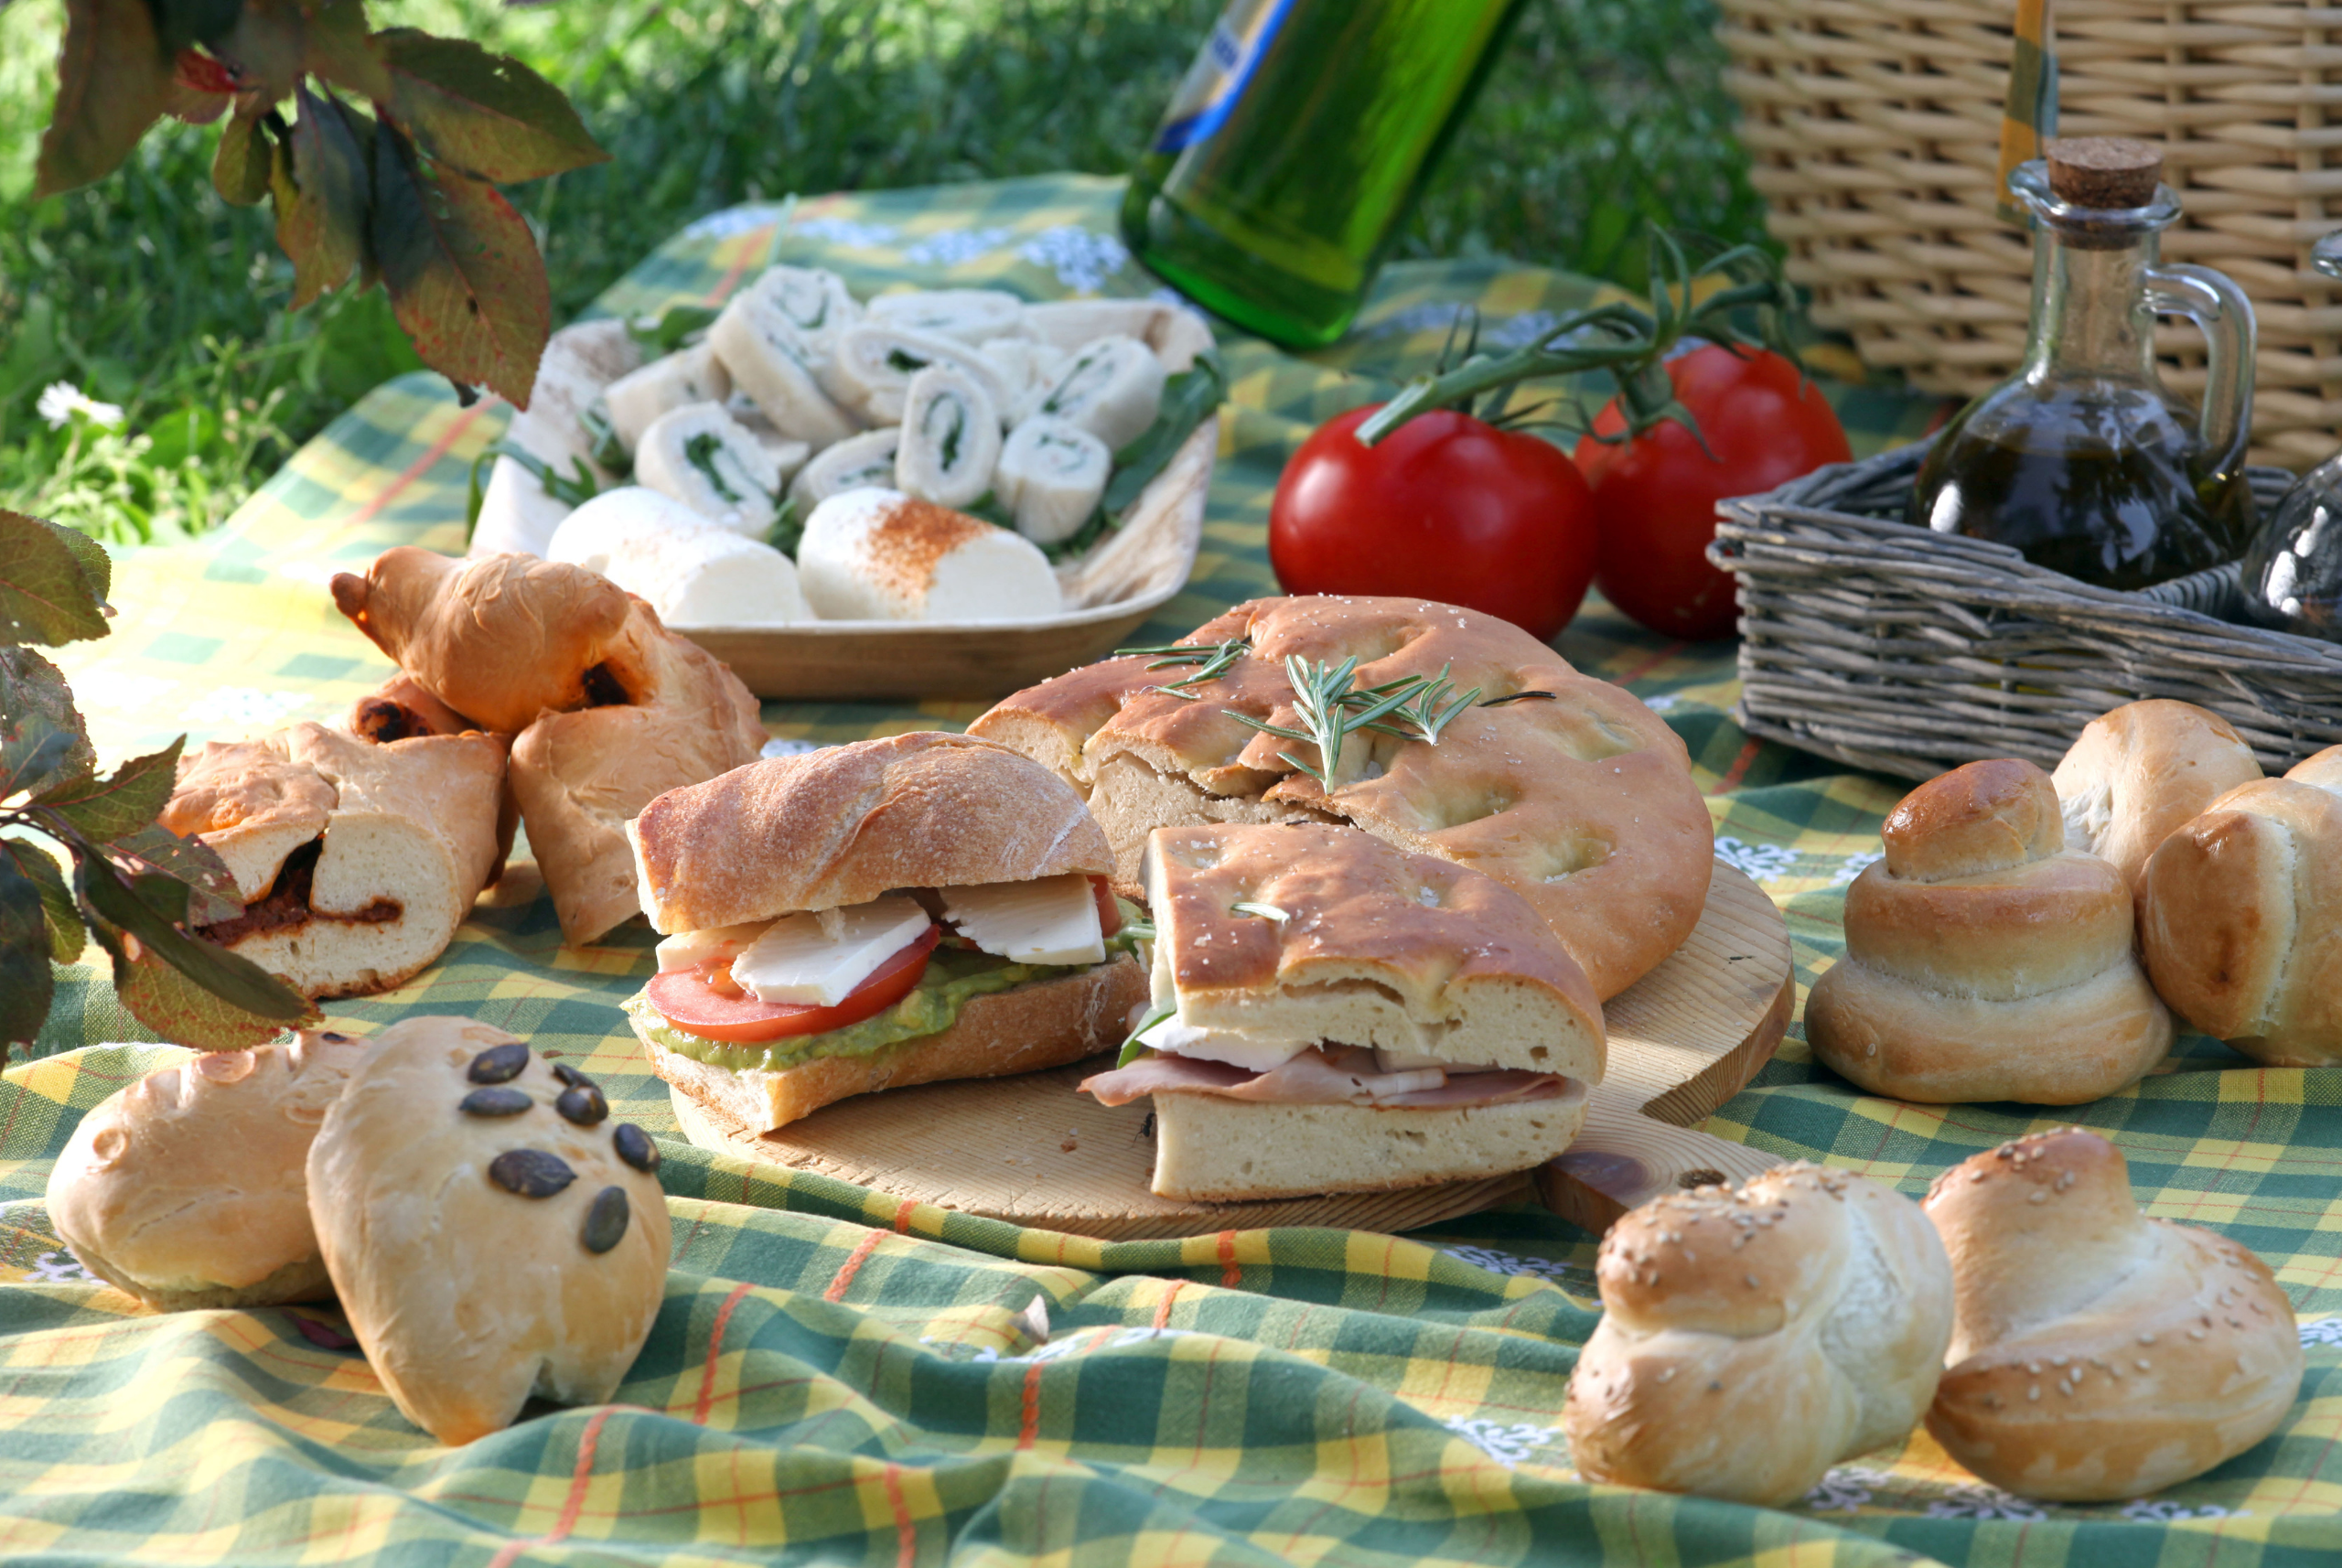 Picnic food on the grass at the park